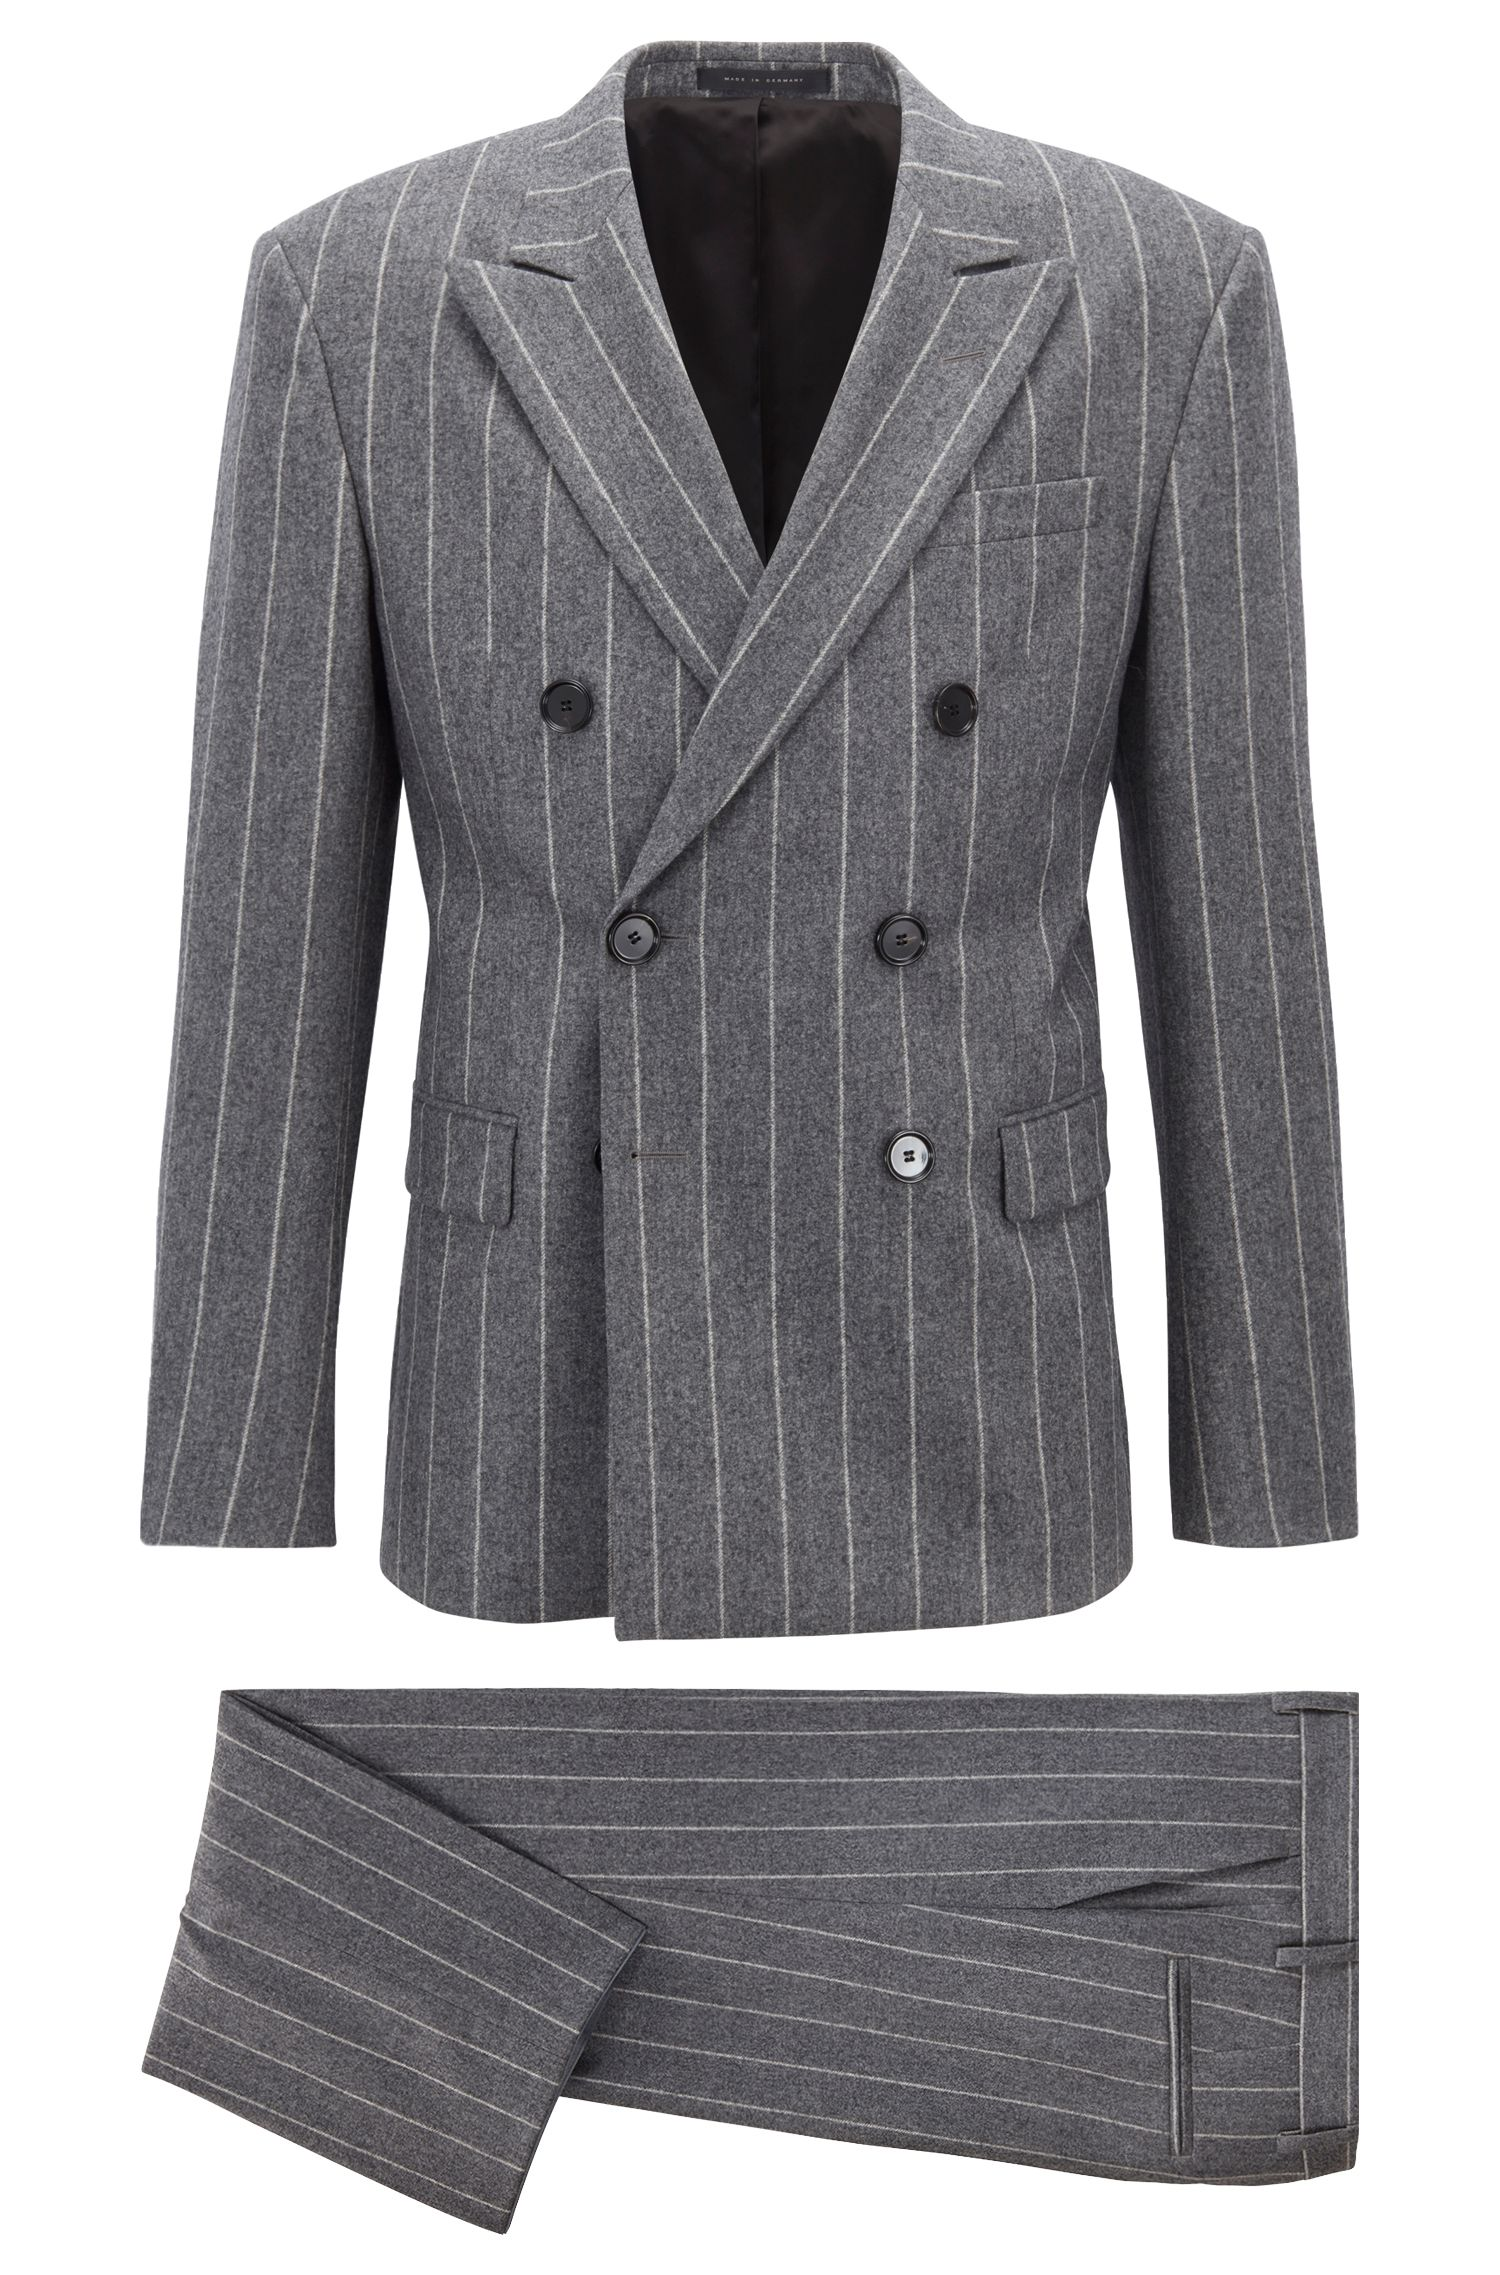 Fashion Show Capsule relaxed-fit double-breasted suit, Grey